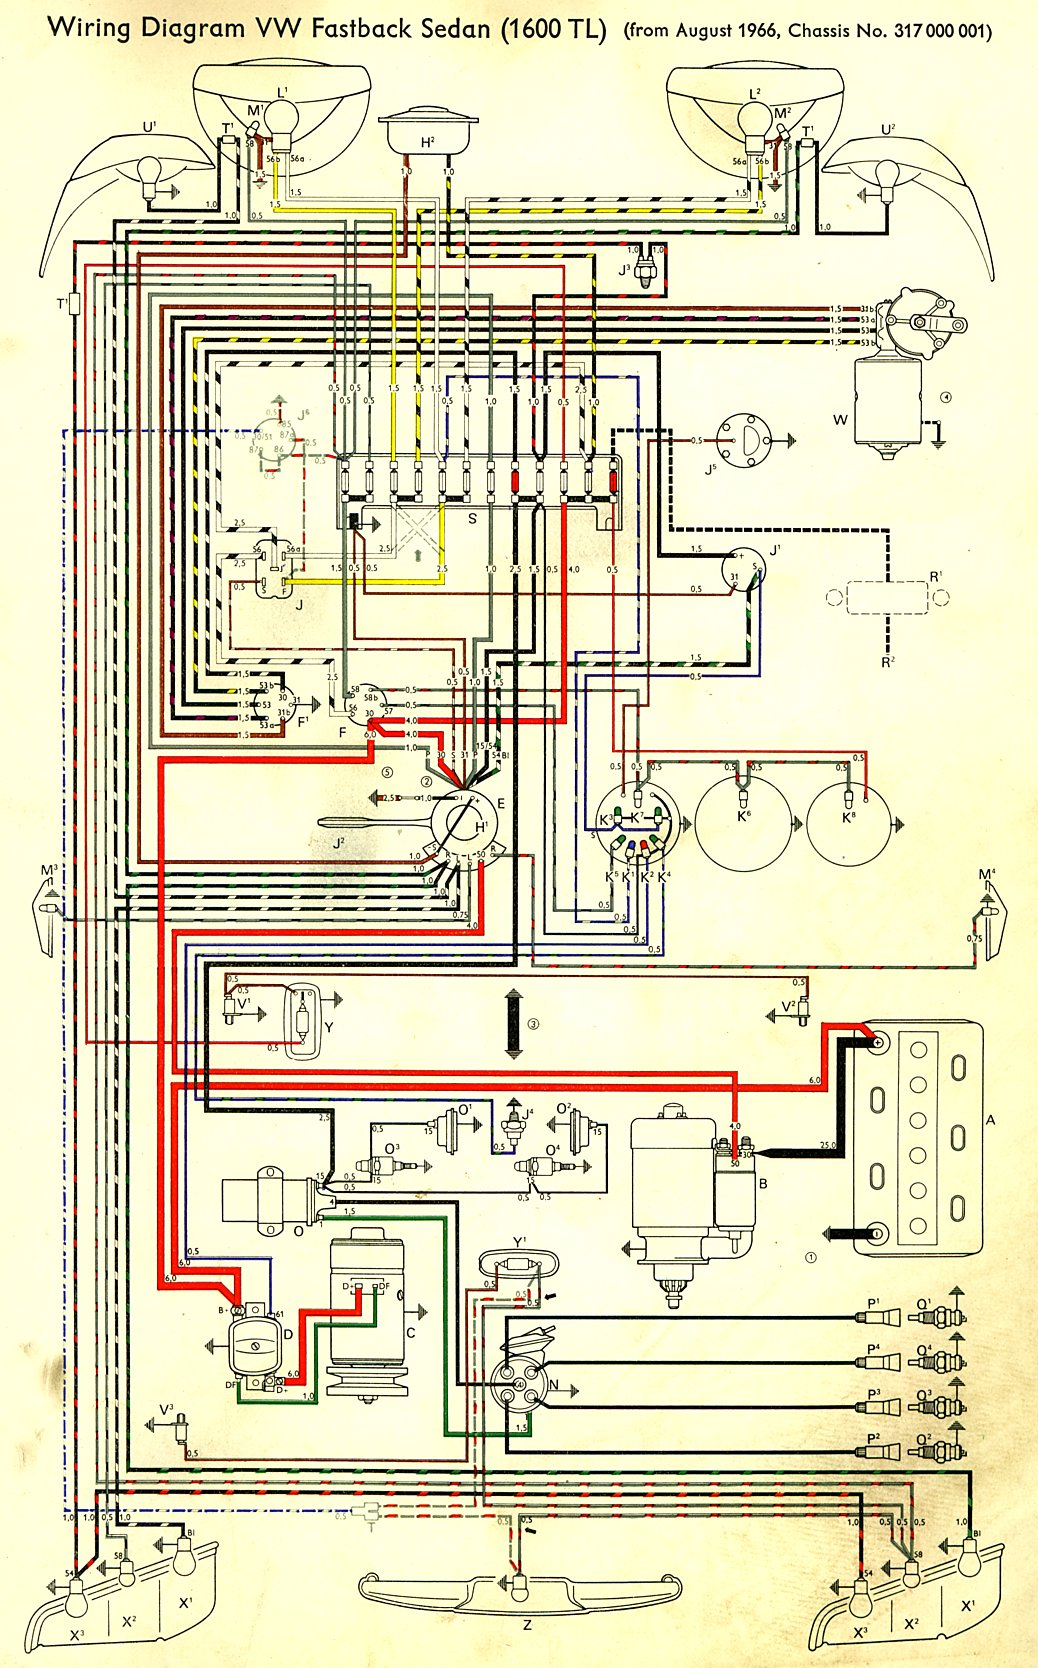 hight resolution of vw type 3 wiring diagram wiring diagram blogs rh 1 2 2 restaurant freinsheimer hof de volkswagen beetle wiring diagram 1971 vw super beetle wiring diagram